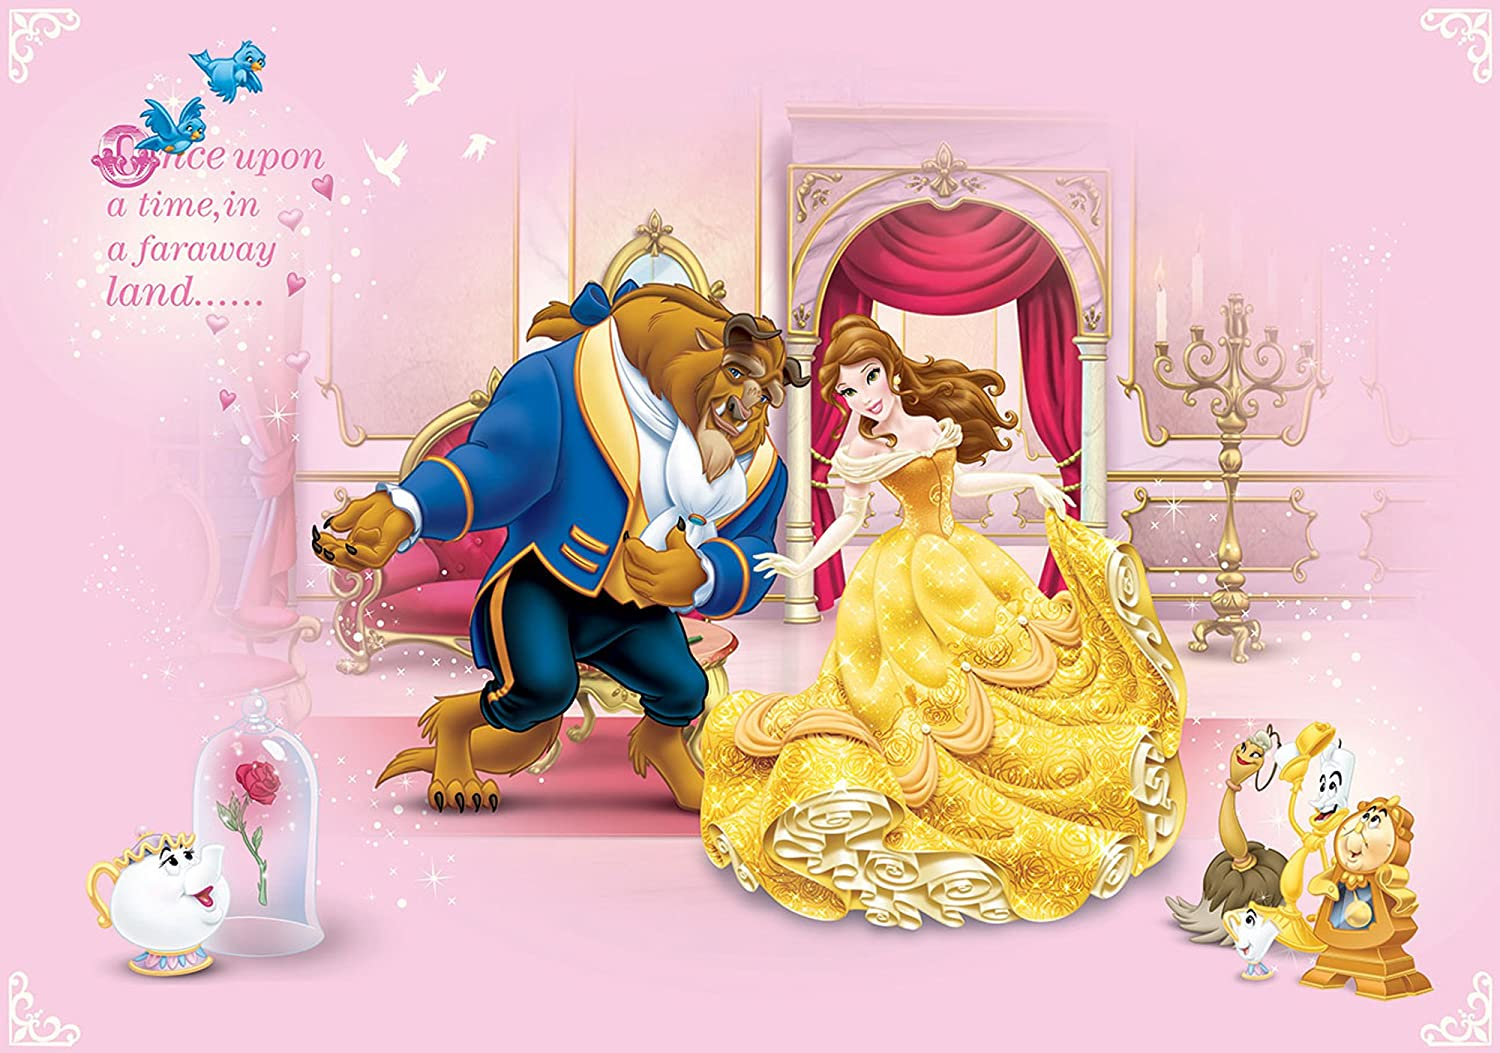 Disney Beauty And The Beast Wallpaper Mural Amazon Ca Tools